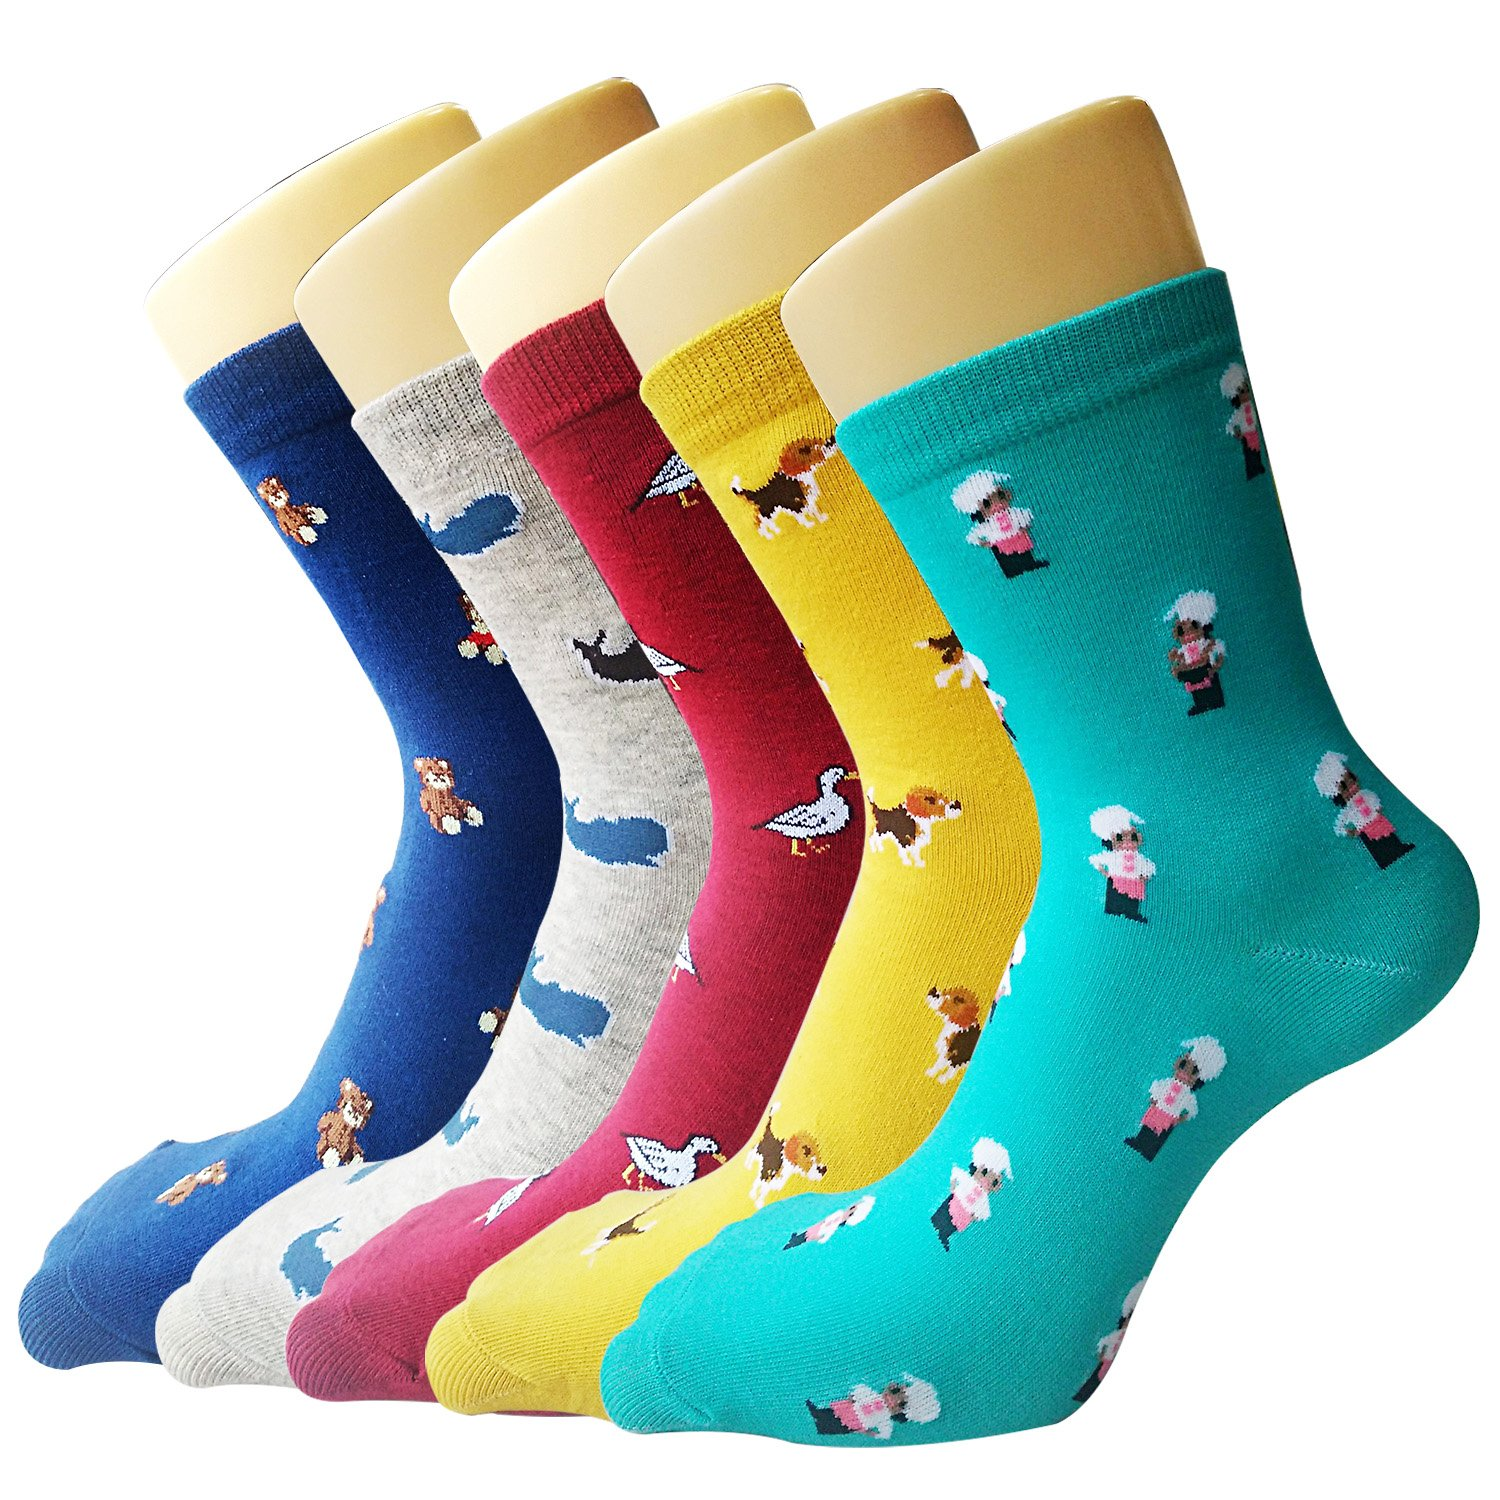 5 Pairs Womens Cute Funny Socks Casual Cotton Crew Animal Socks YSense JANPS1